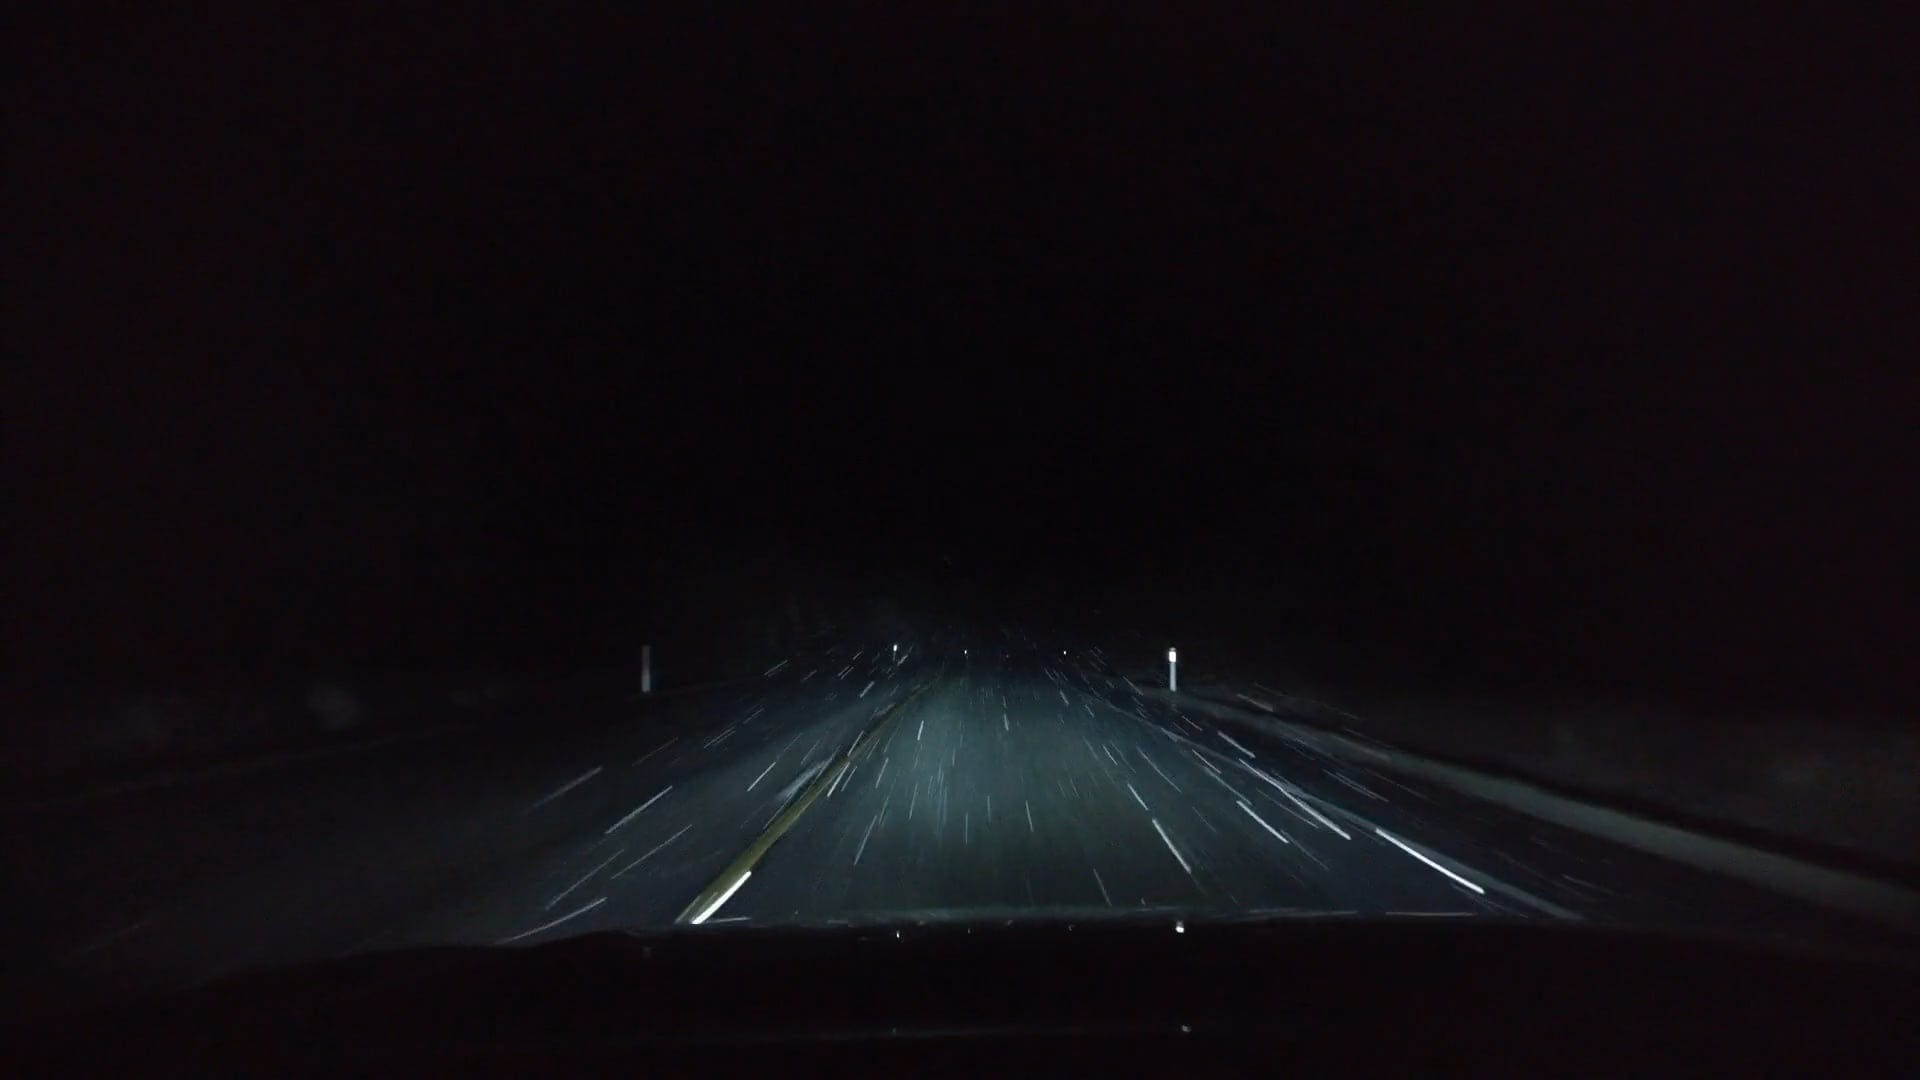 Roadtrip At Night